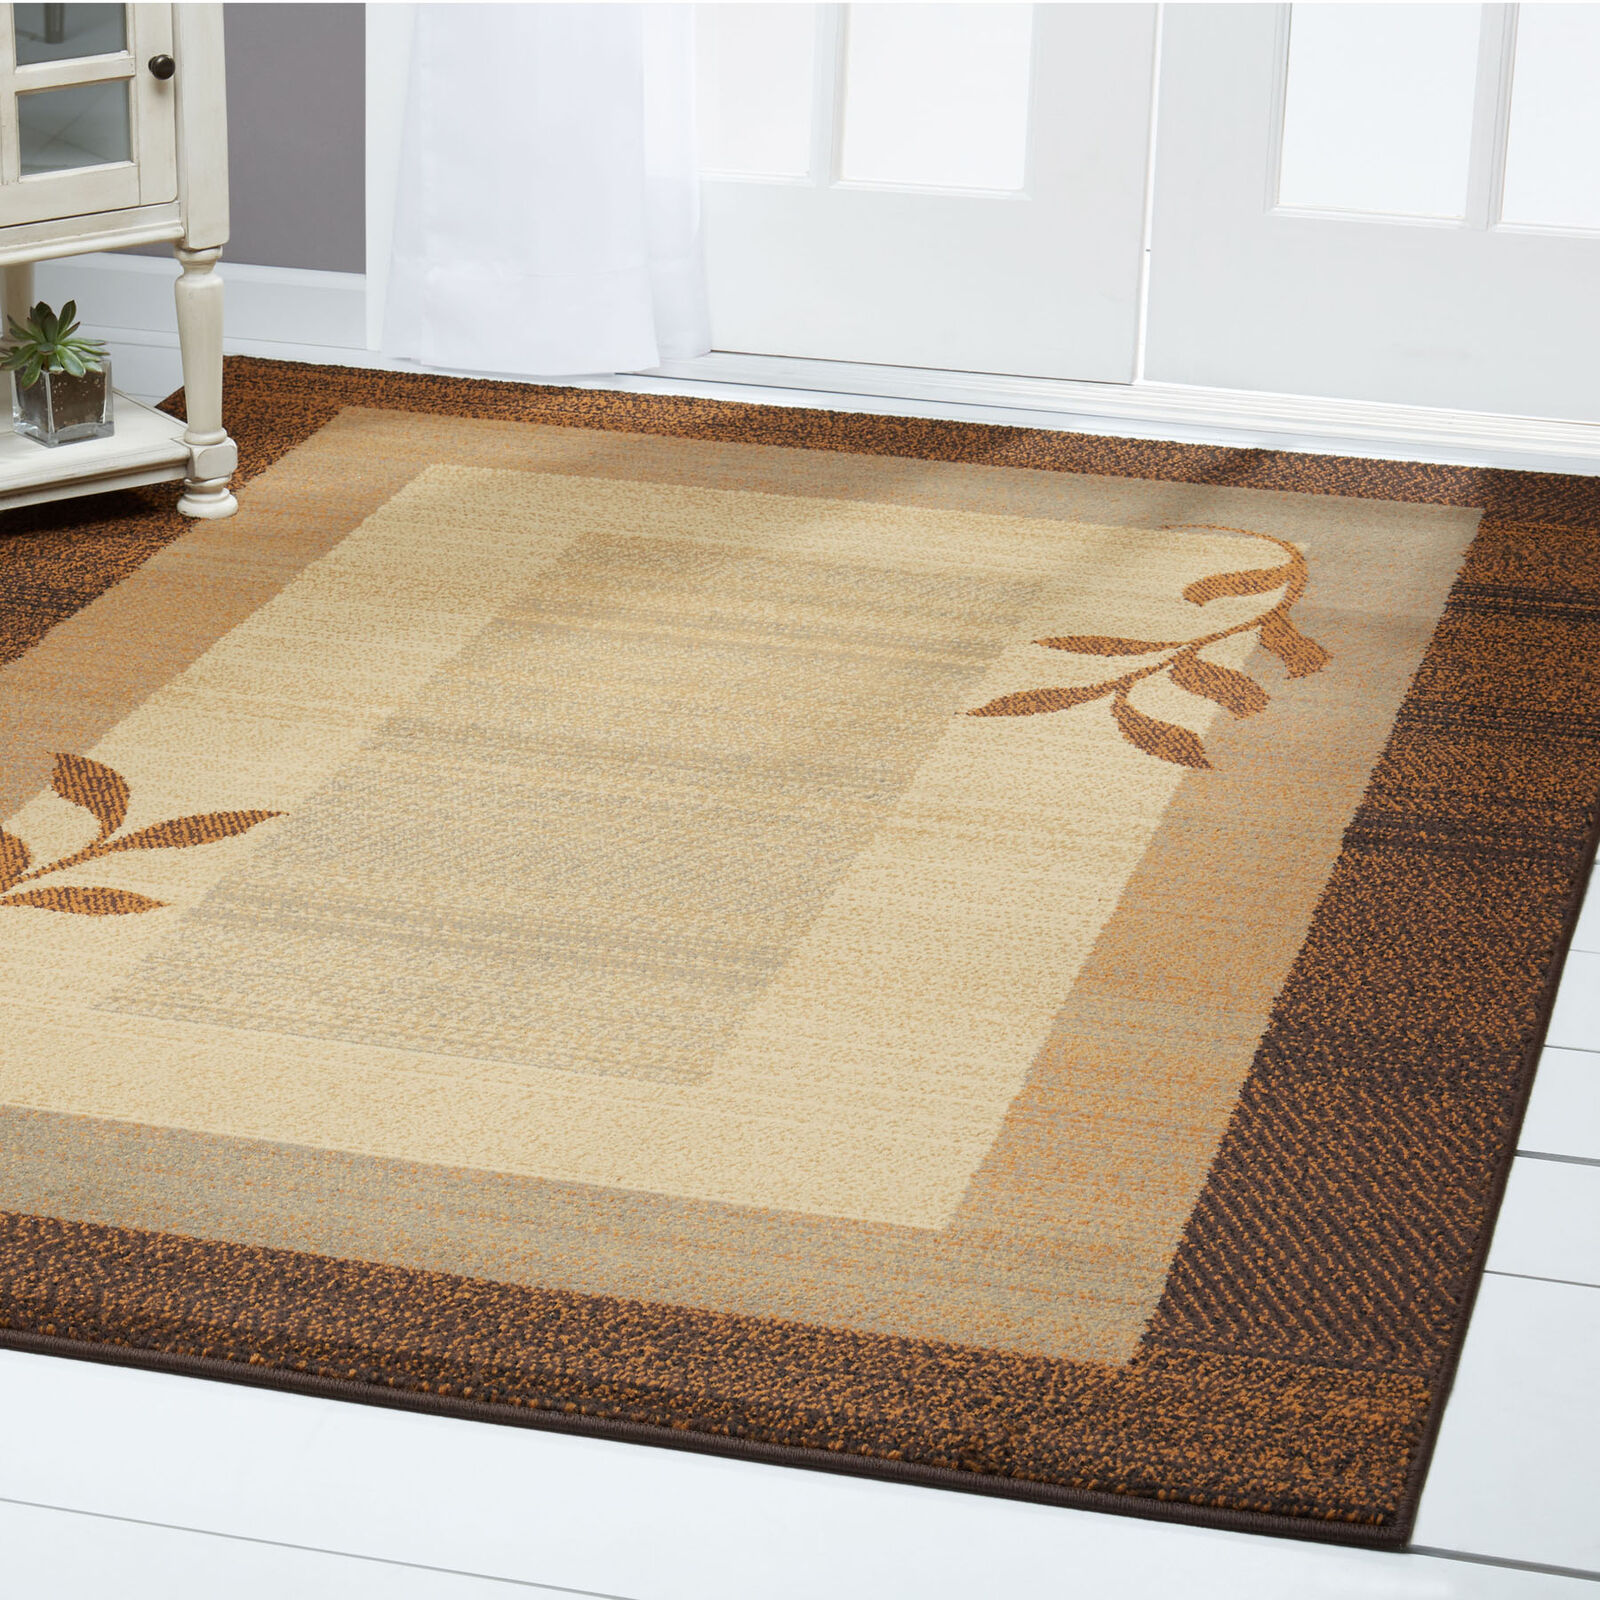 Hand Tufted Wool Area Rug Floral Beige Brown Beige Brown 4 X 6 For Sale Online Ebay